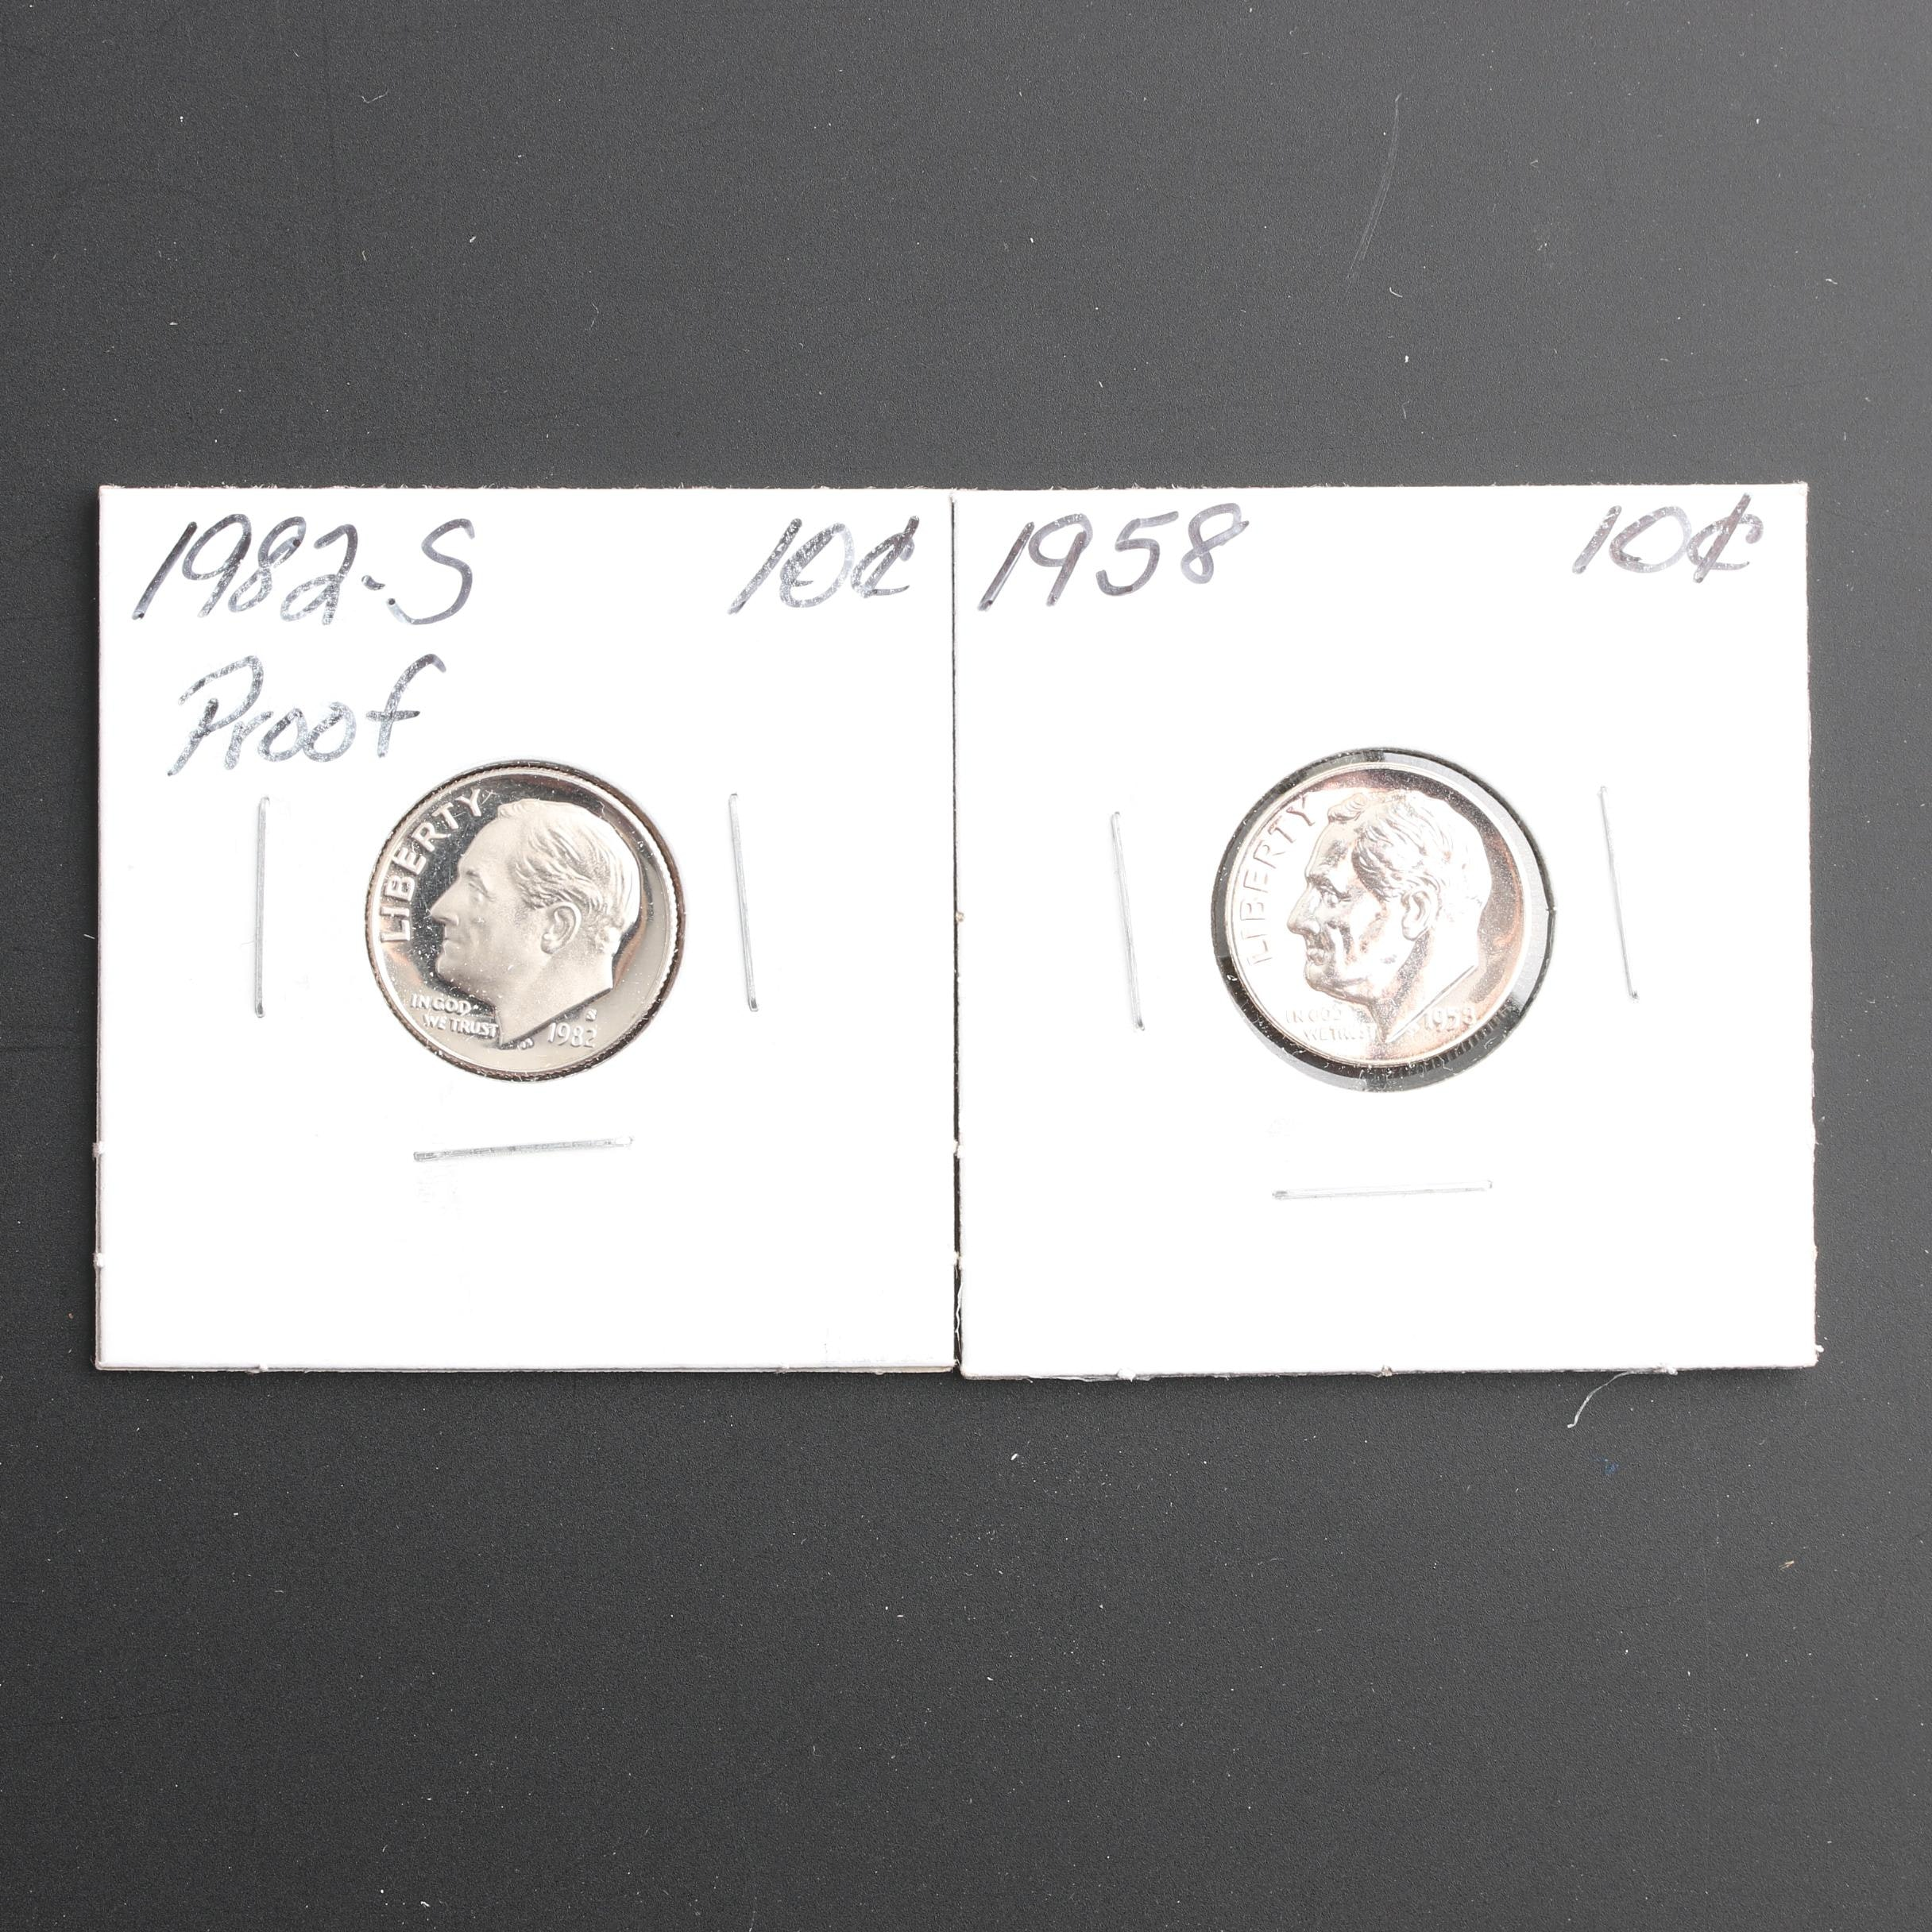 Two Proof Roosevelt Dimes, One Silver